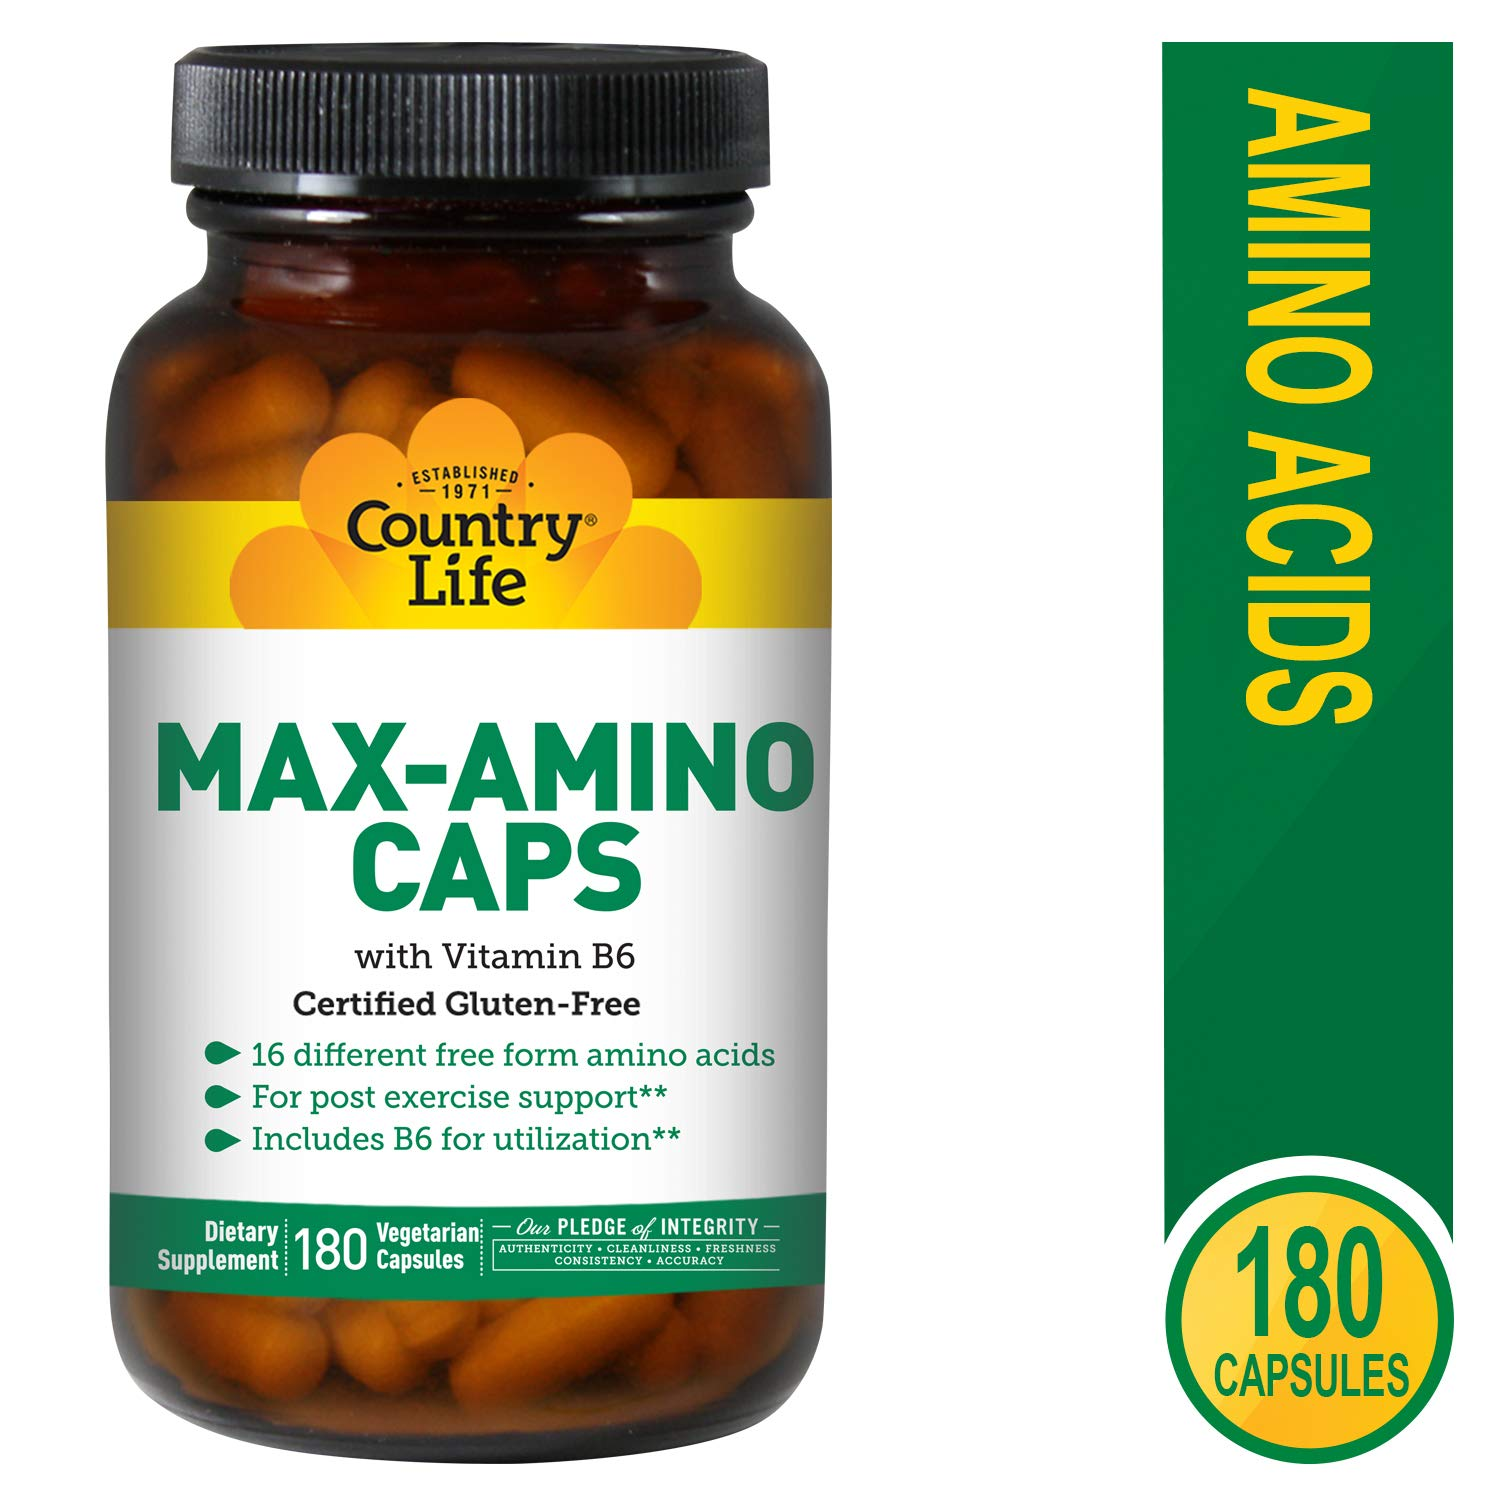 Country Life Max-Amino Caps – 180 Vegetarian Capsules – 16 Different Free Form Amino acids – Post Exercise Support